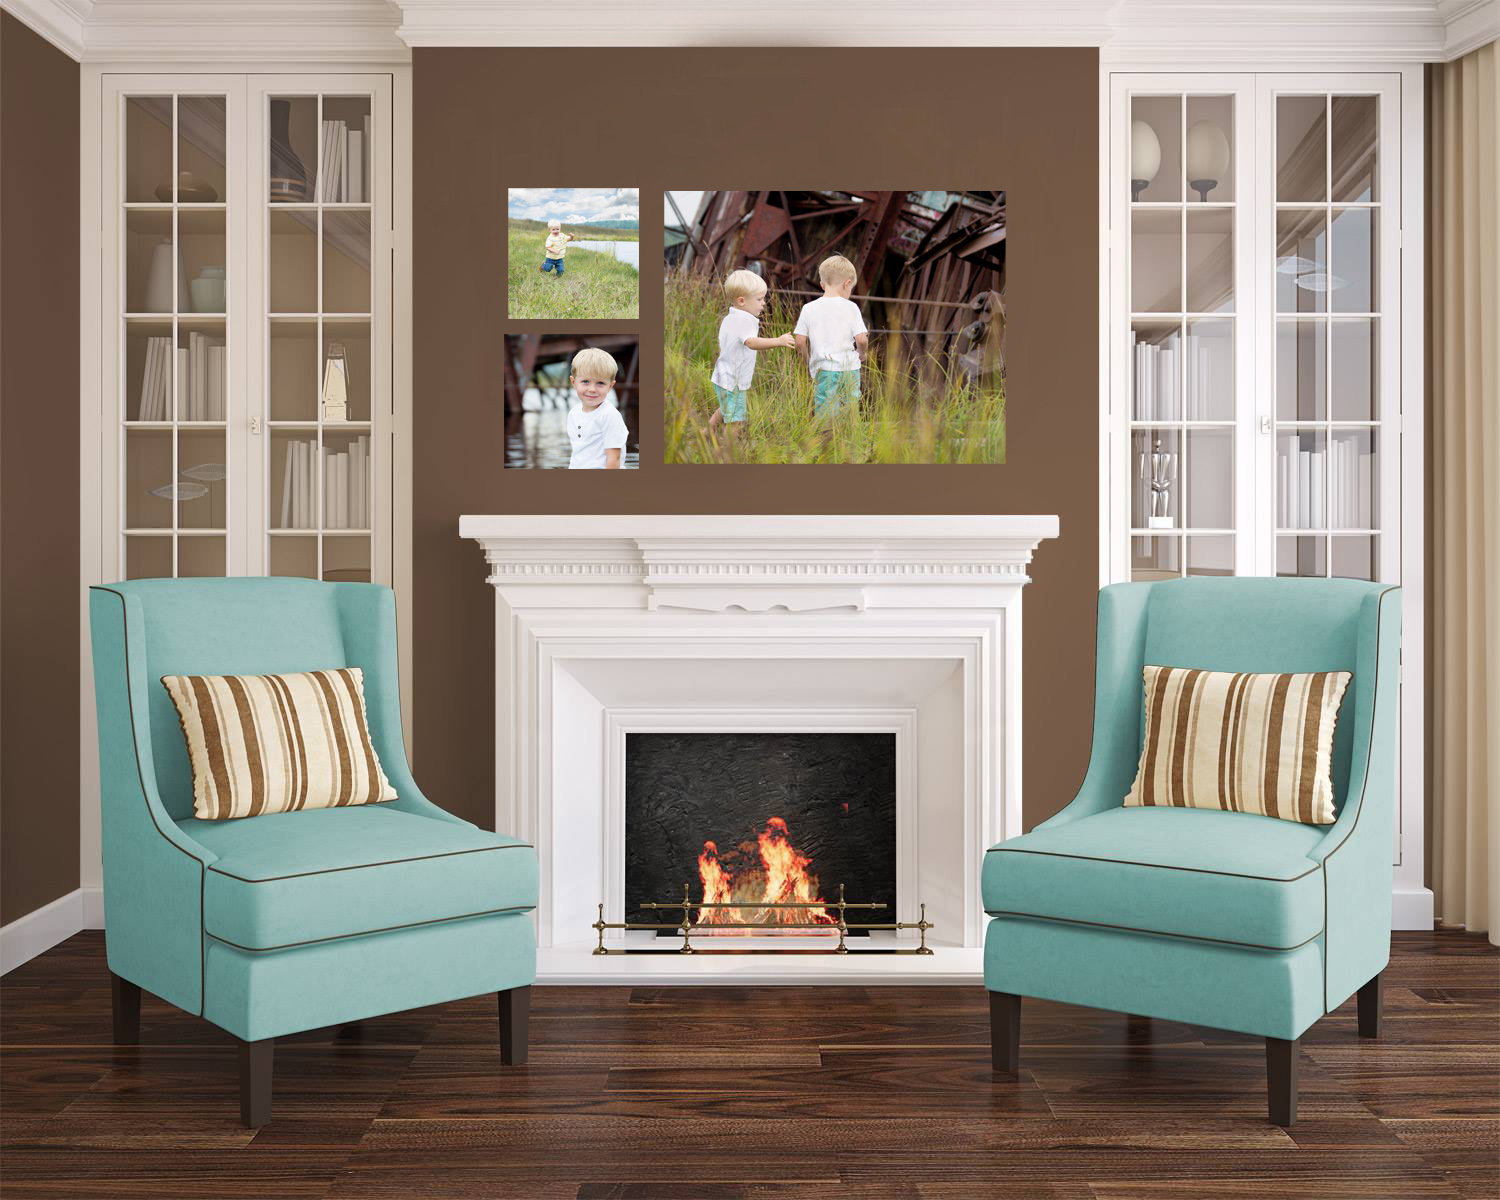 portraits that coordinate to home design is a part of full service photographer services